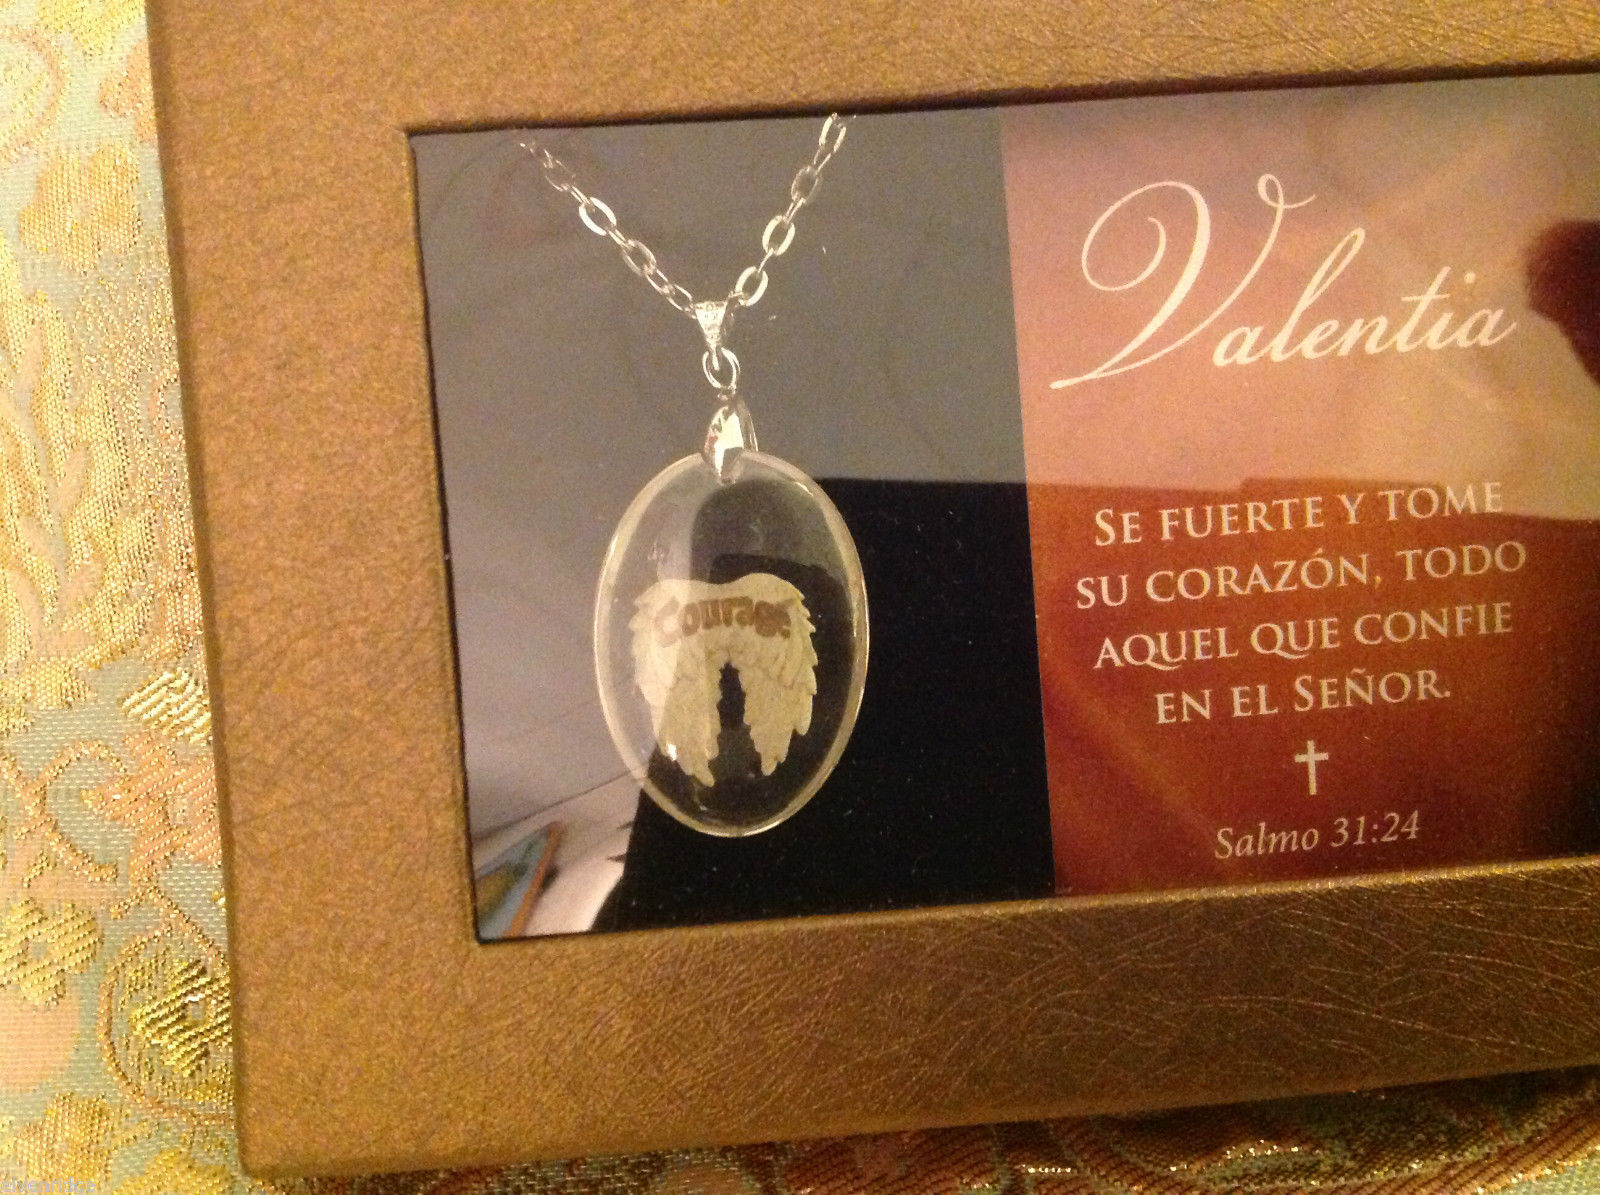 Valentia in Spanish angel wing pendant with sentiment in Espanol and gift box